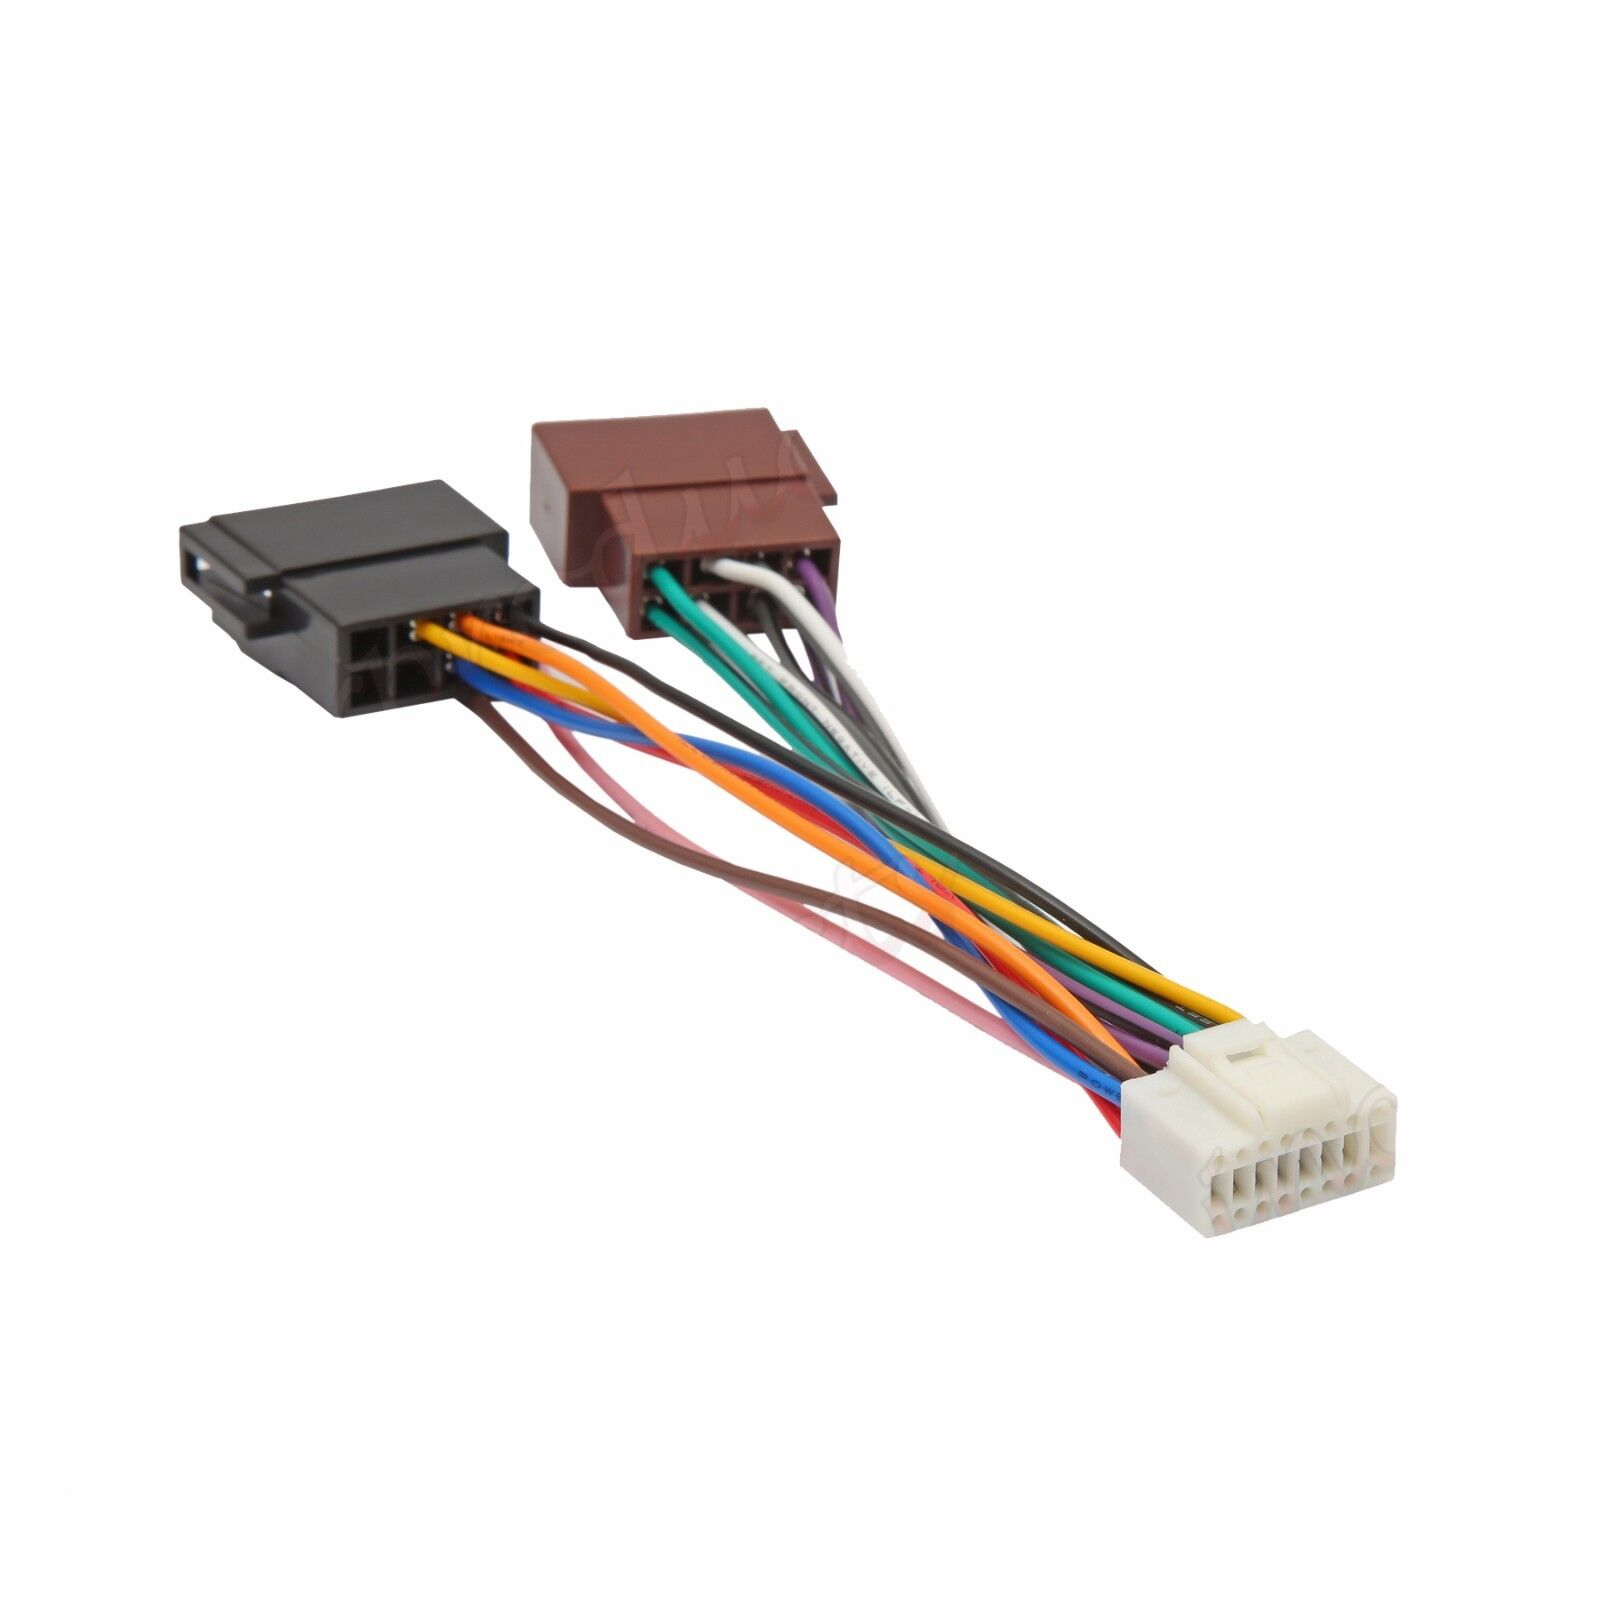 small resolution of alpine 16 pin iso wiring harness connector adaptor car stereo radio loom